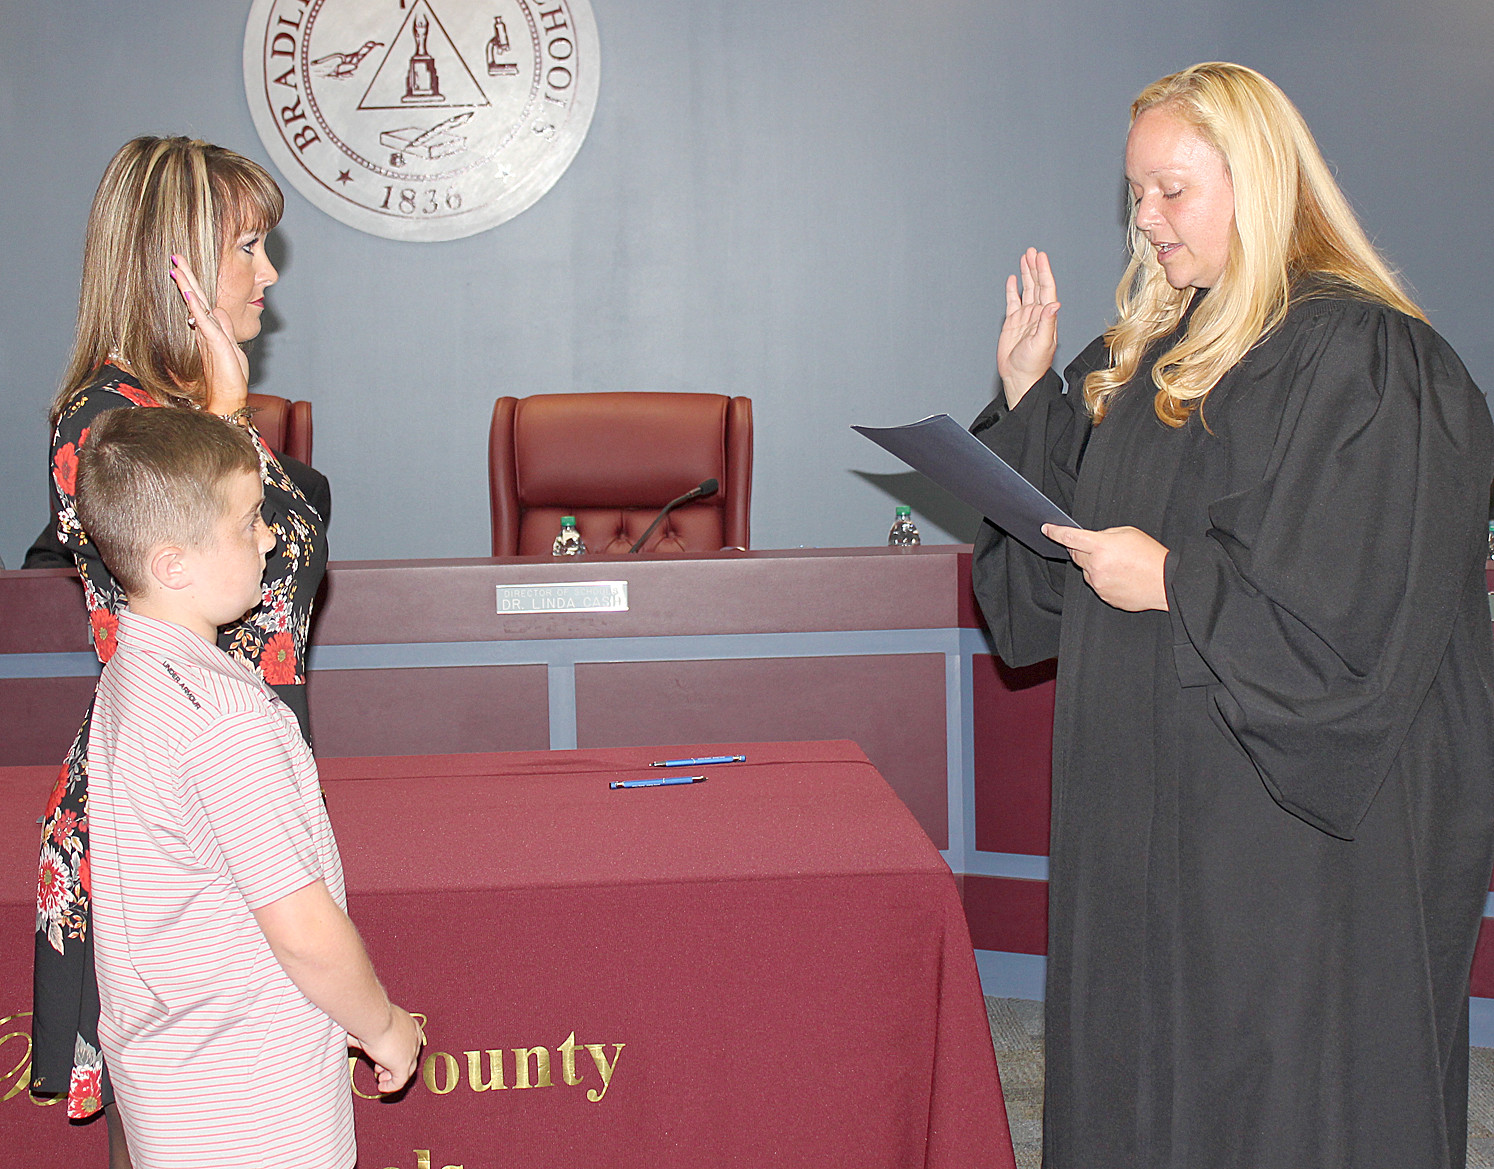 AMANDA LEE, accompanied by her son Axl, receives the Oath of Office from Magistrate Ashley Gaither after being re-elected as the District 6 Bradley County Board of Education member.